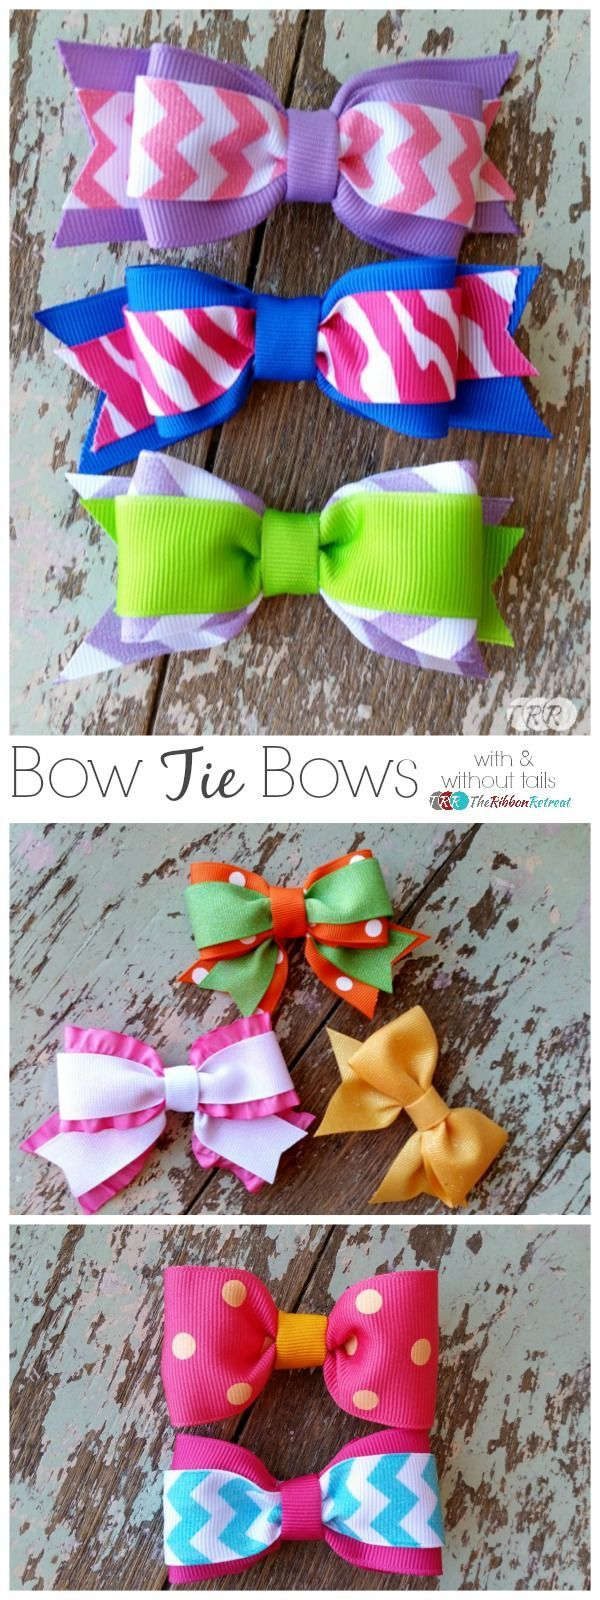 Bow Tie Bows...with and without tails - The Ribbon Retreat Blog: